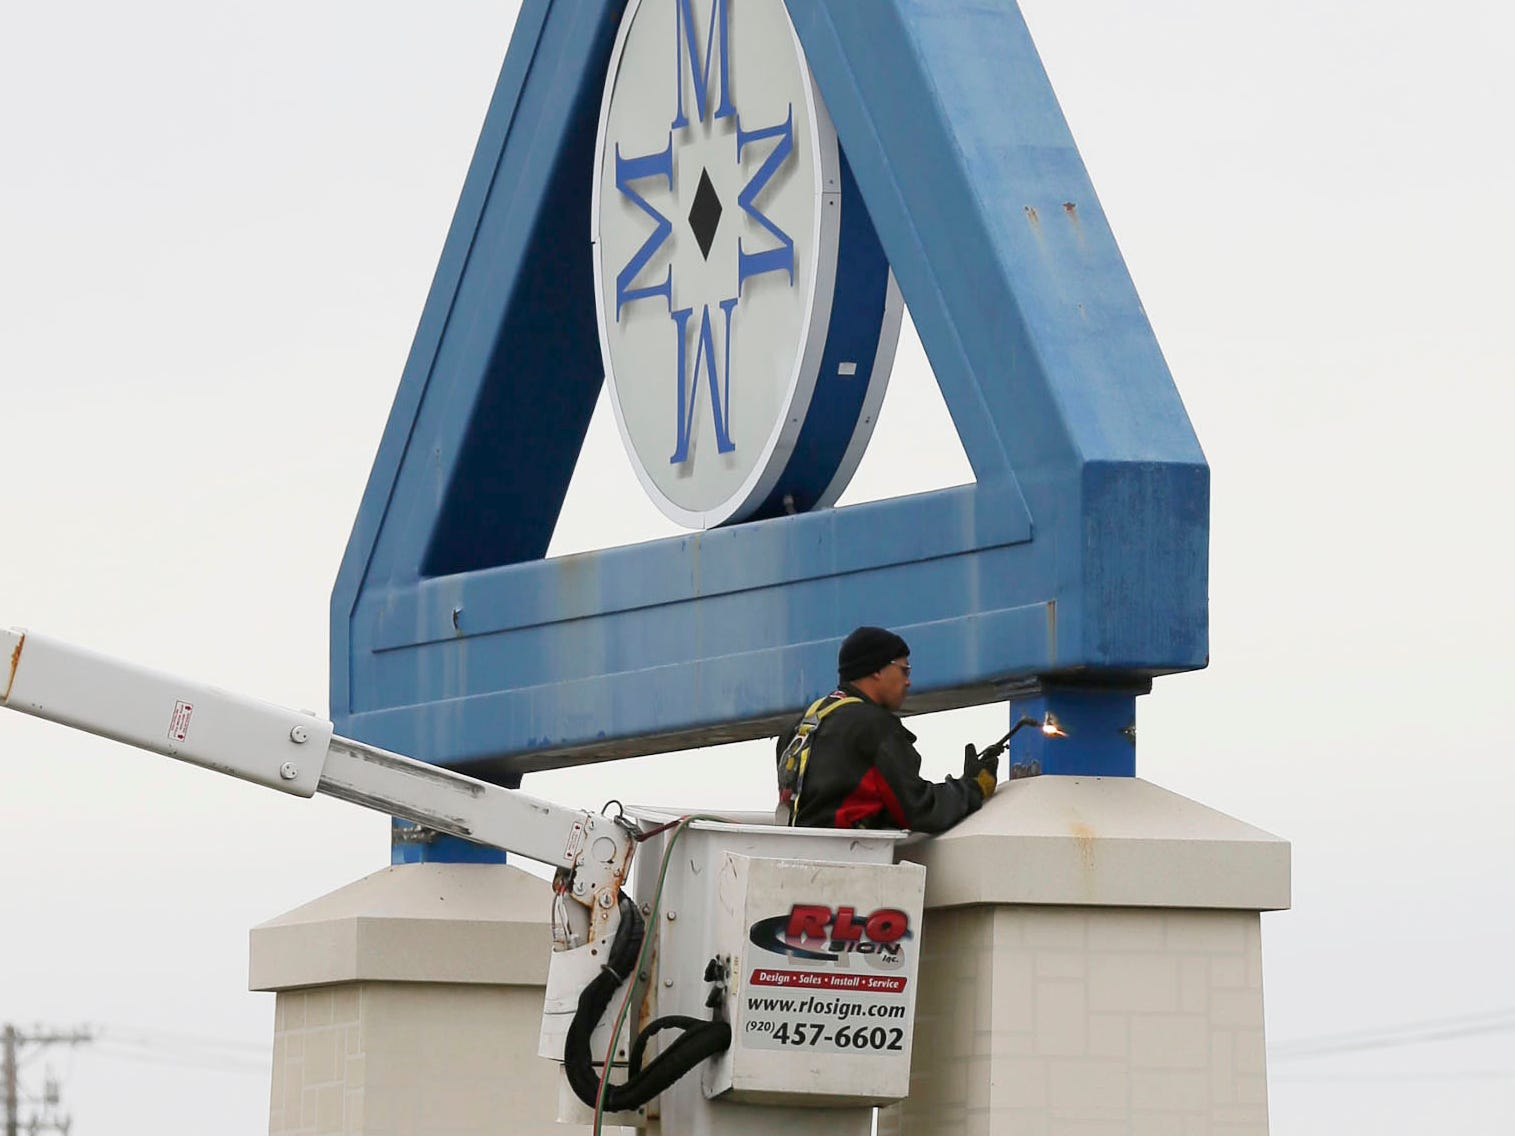 RLO Signs' Tom Peschong uses a cutting torch to dismantle the iconic Sheboygan Memorial Mall sign, Friday, October 26, 2018, in Sheboygan, Wis. A new sign has been erected near the new Meijer's complex.